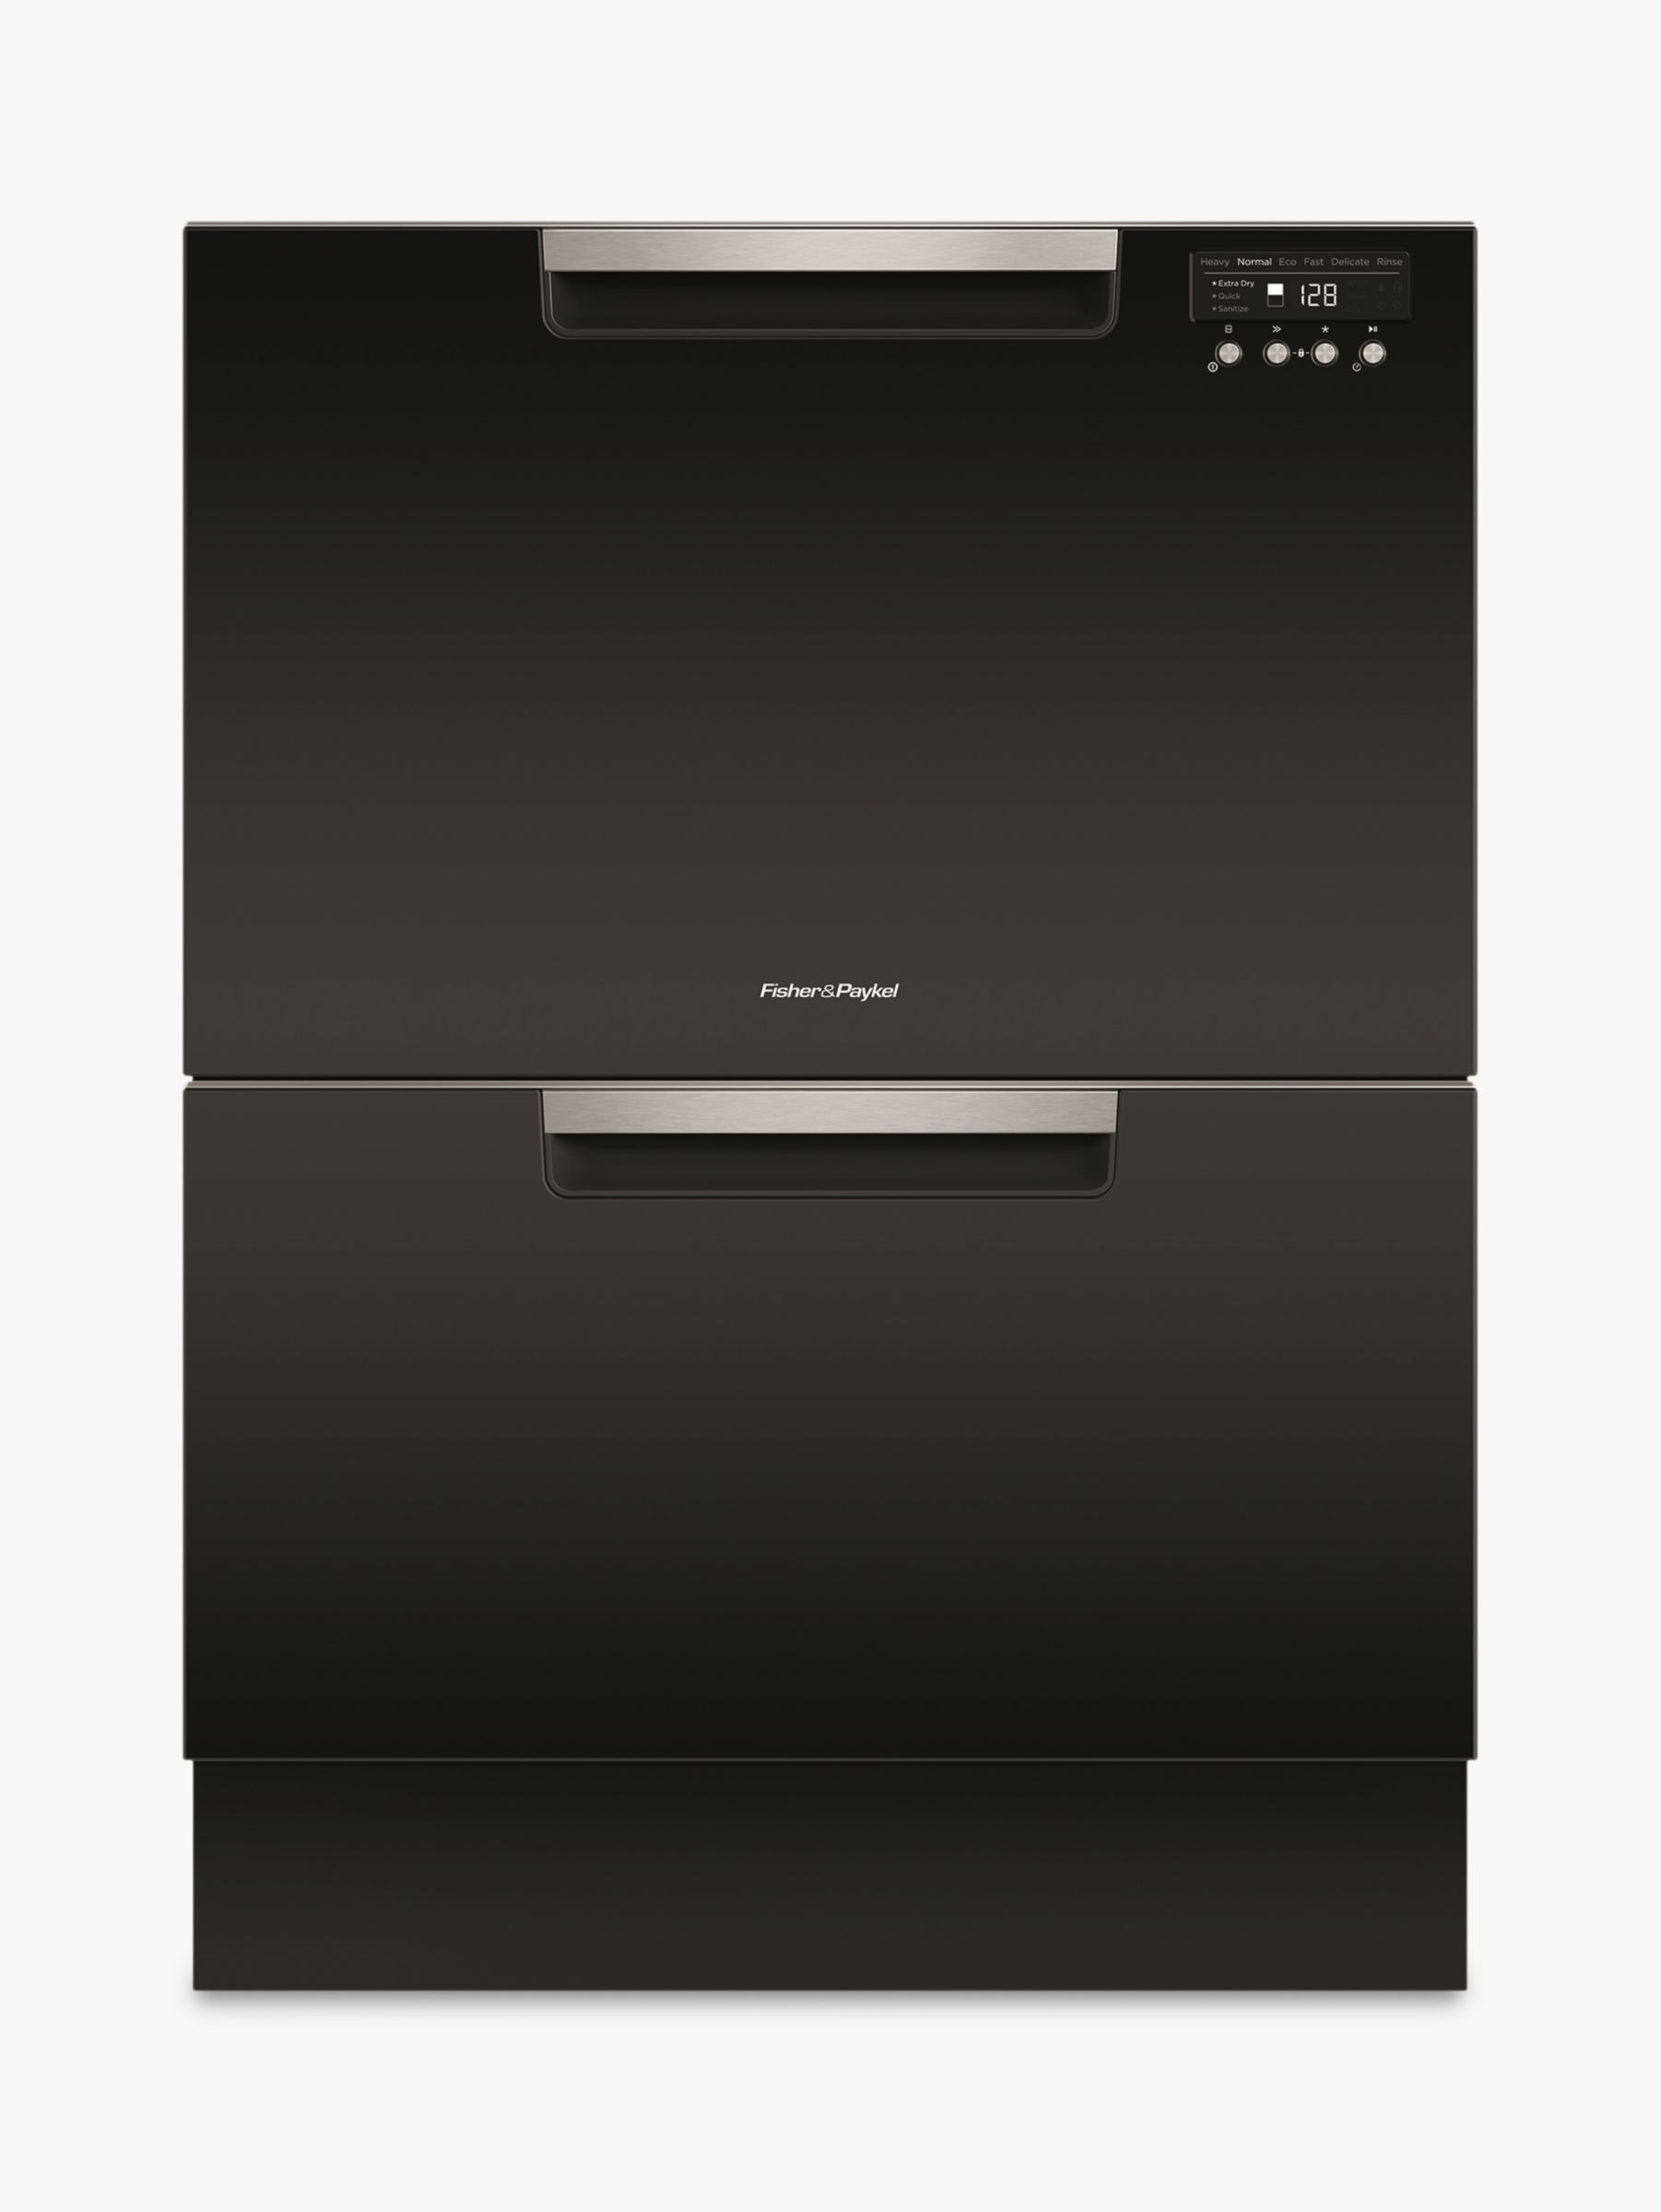 Fisher & Paykel Fisher & Paykel Double DishDrawer Integrated Dishwasher